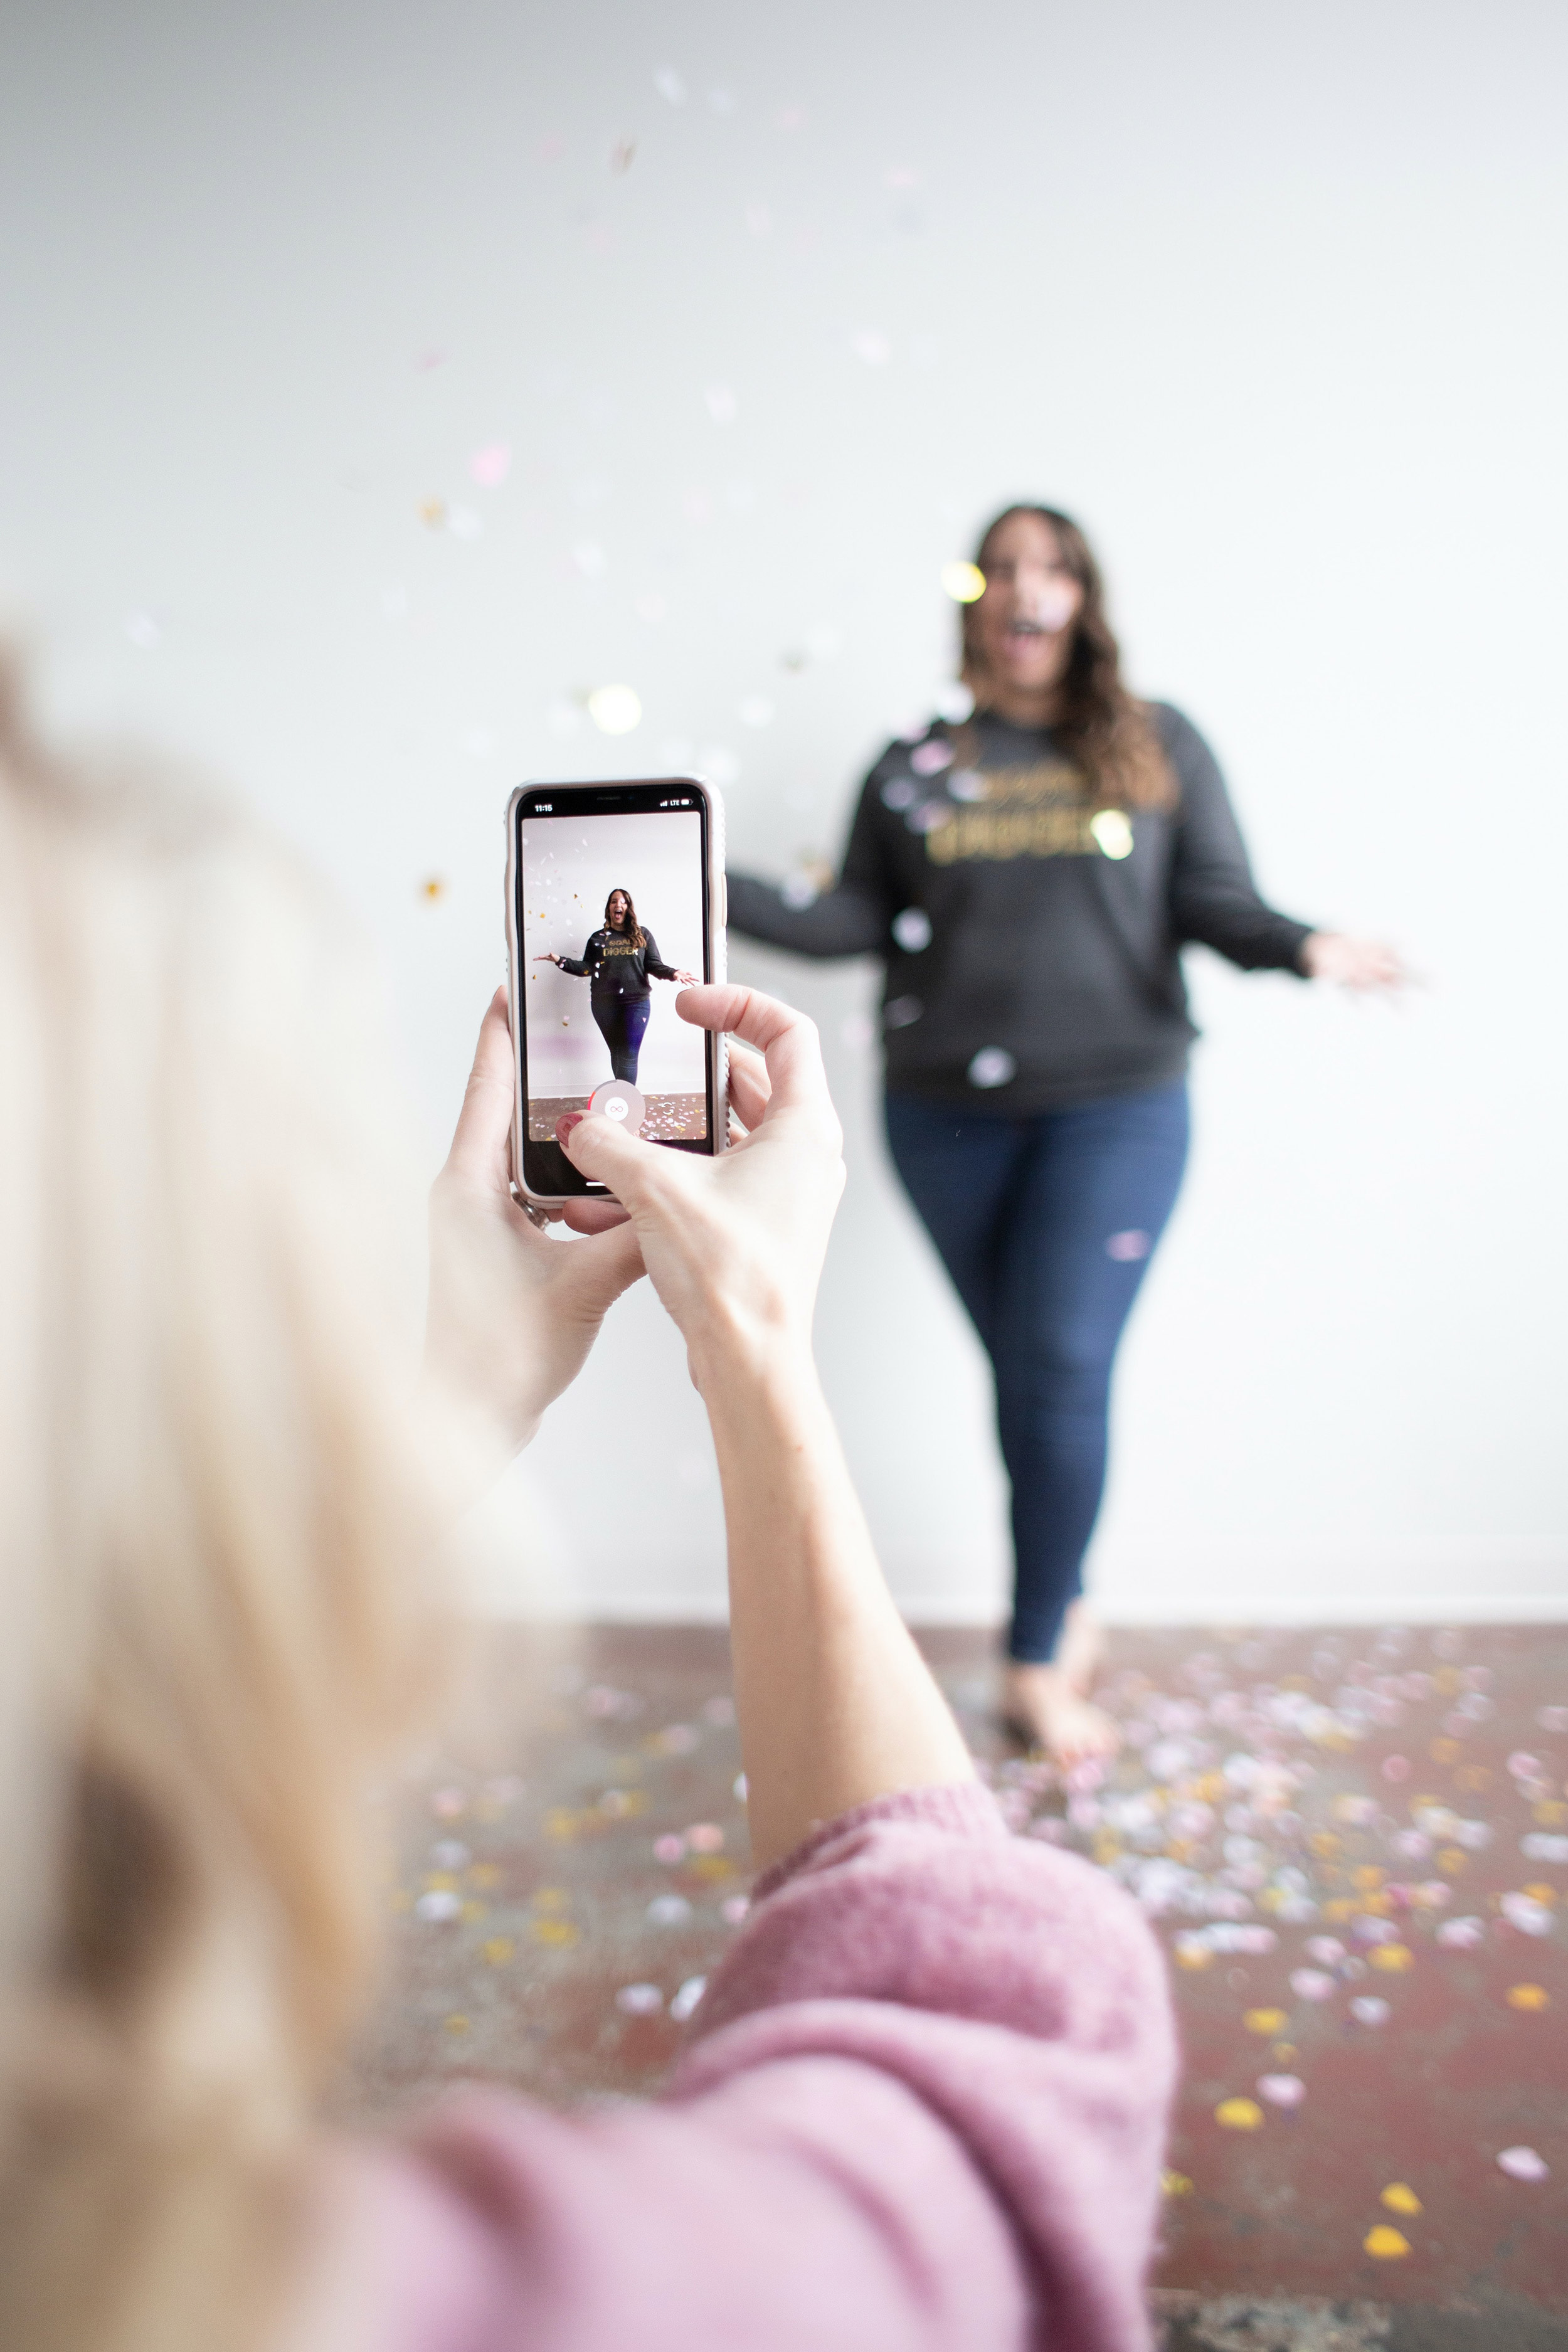 girl filming another girl on a smart phone